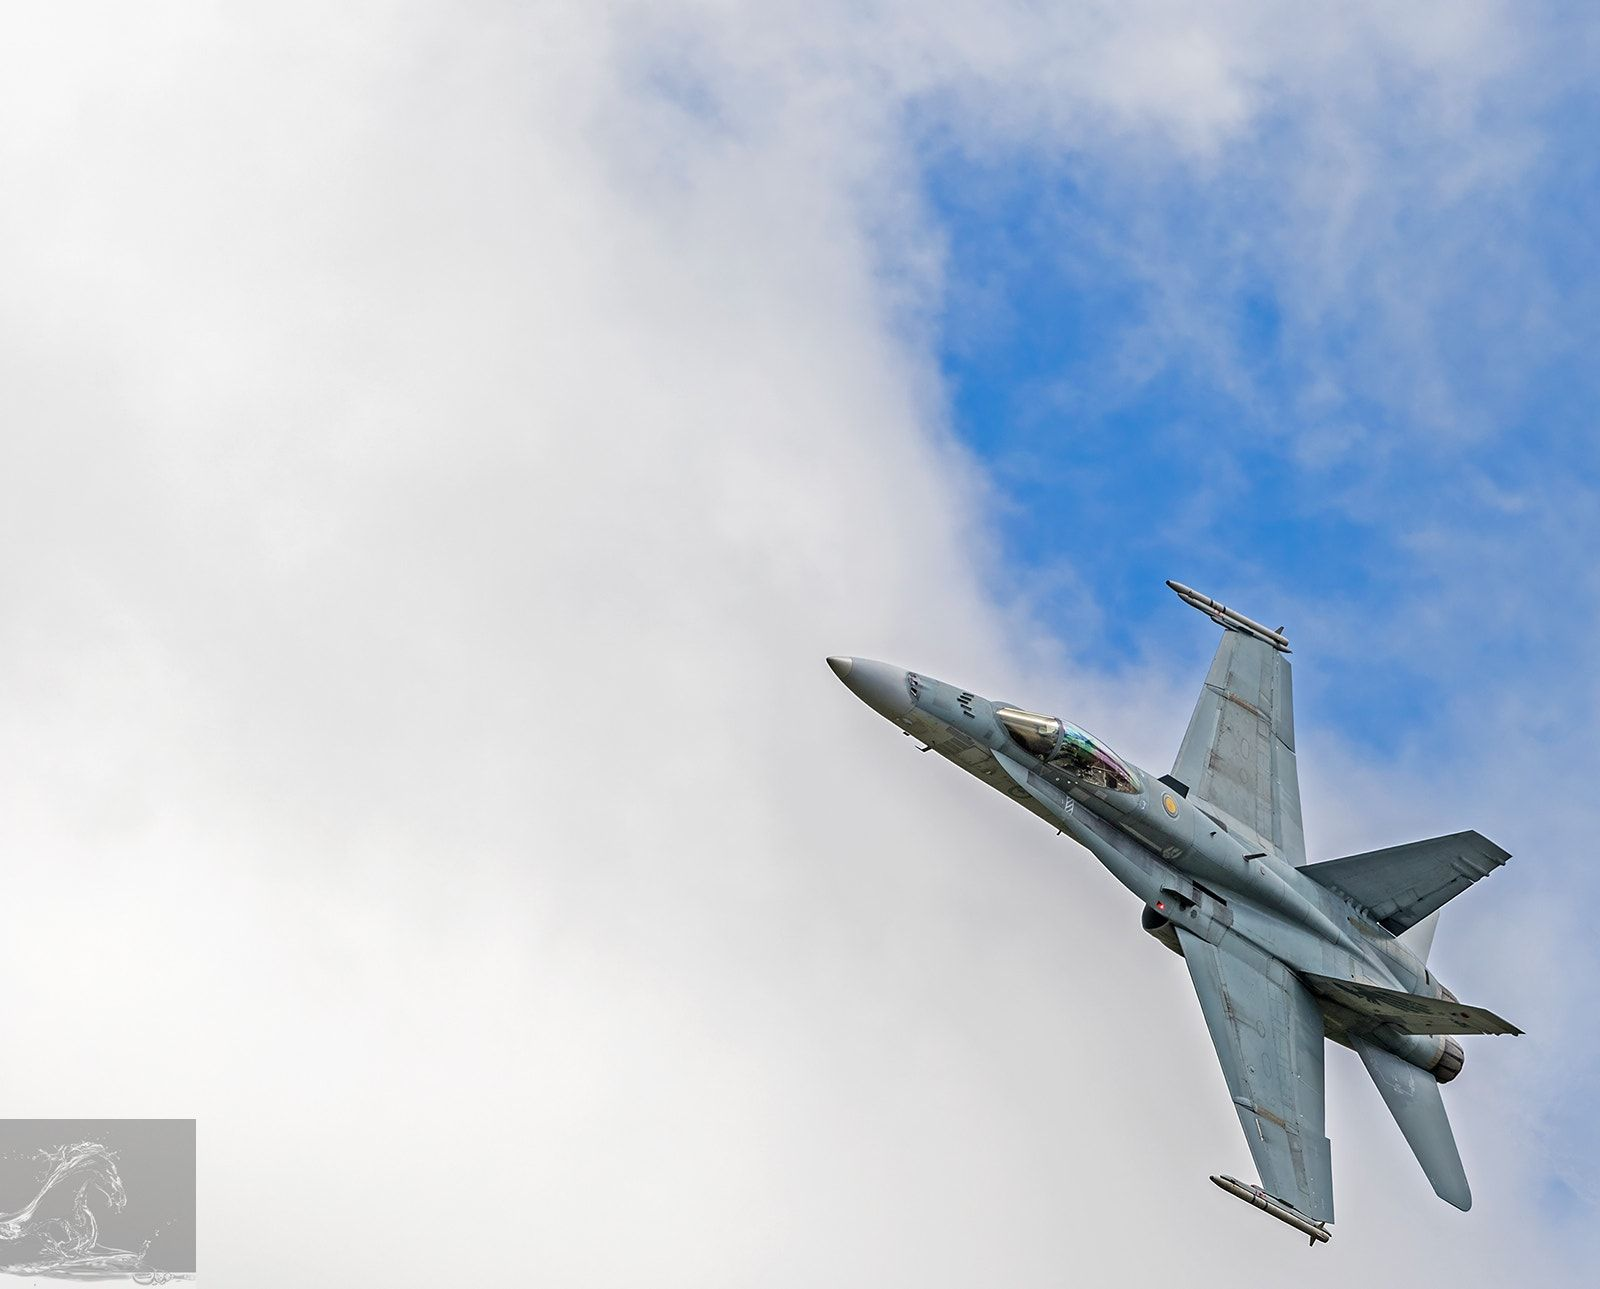 RNZAF Air Tattoo 2017 09 - Seen in this image is a F/A-18 Hornet of the Royal Australian Air Force (RAAF) - taken at the 80th Anniversary RNZAF Air Tattoo held at the Ohakea Air Force Base, NZ…